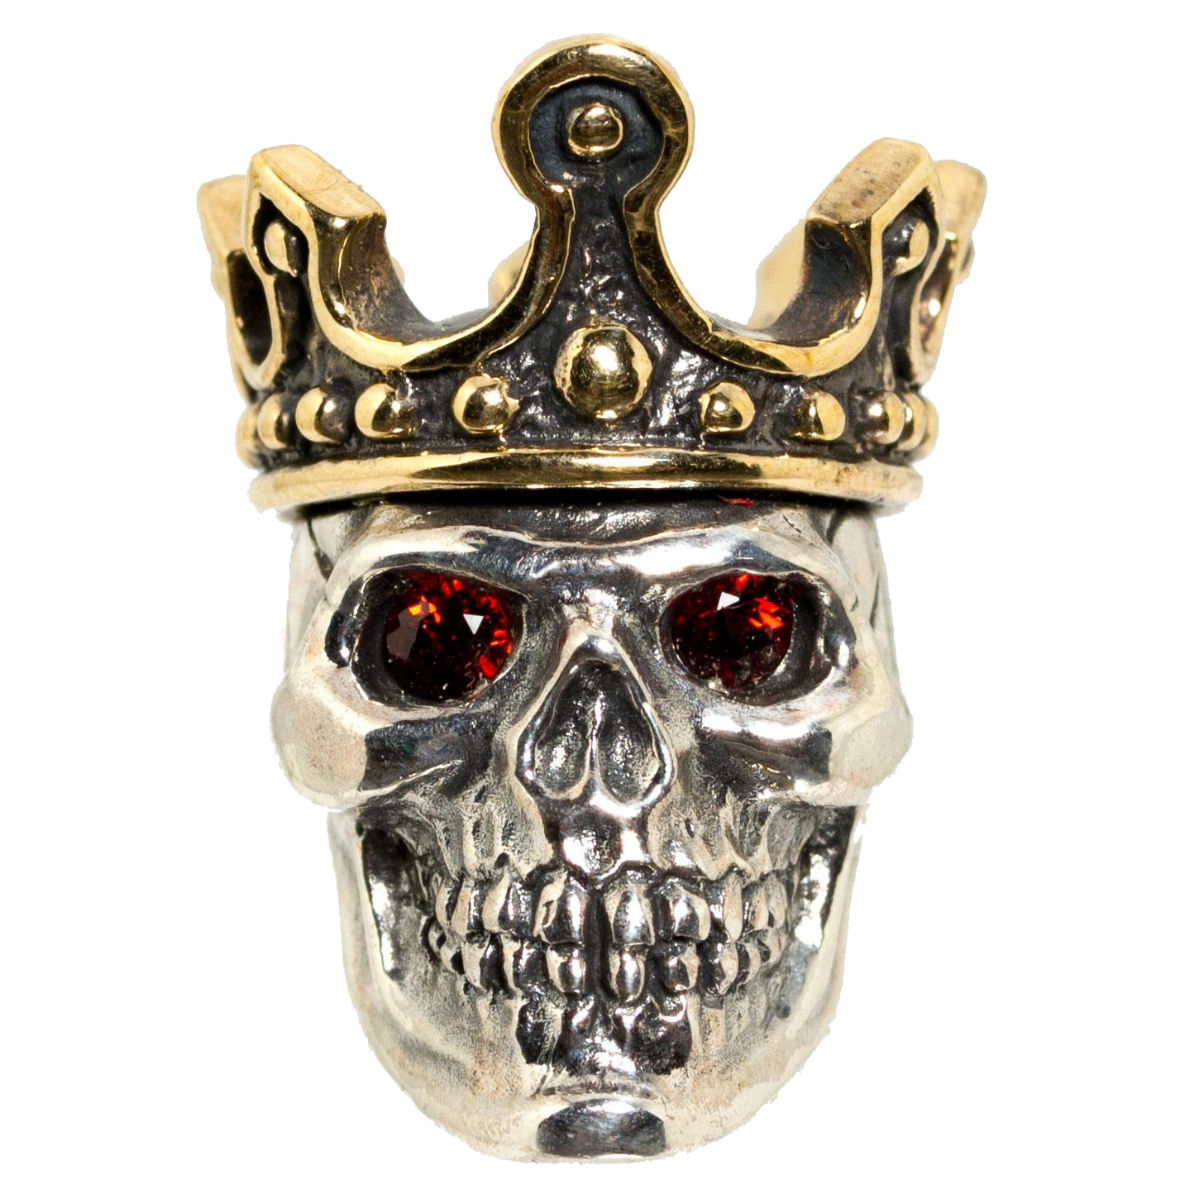 King (Large) with Red Rhinestone Eyes in .925 Sterling Silver and Bronze by GD Skulls